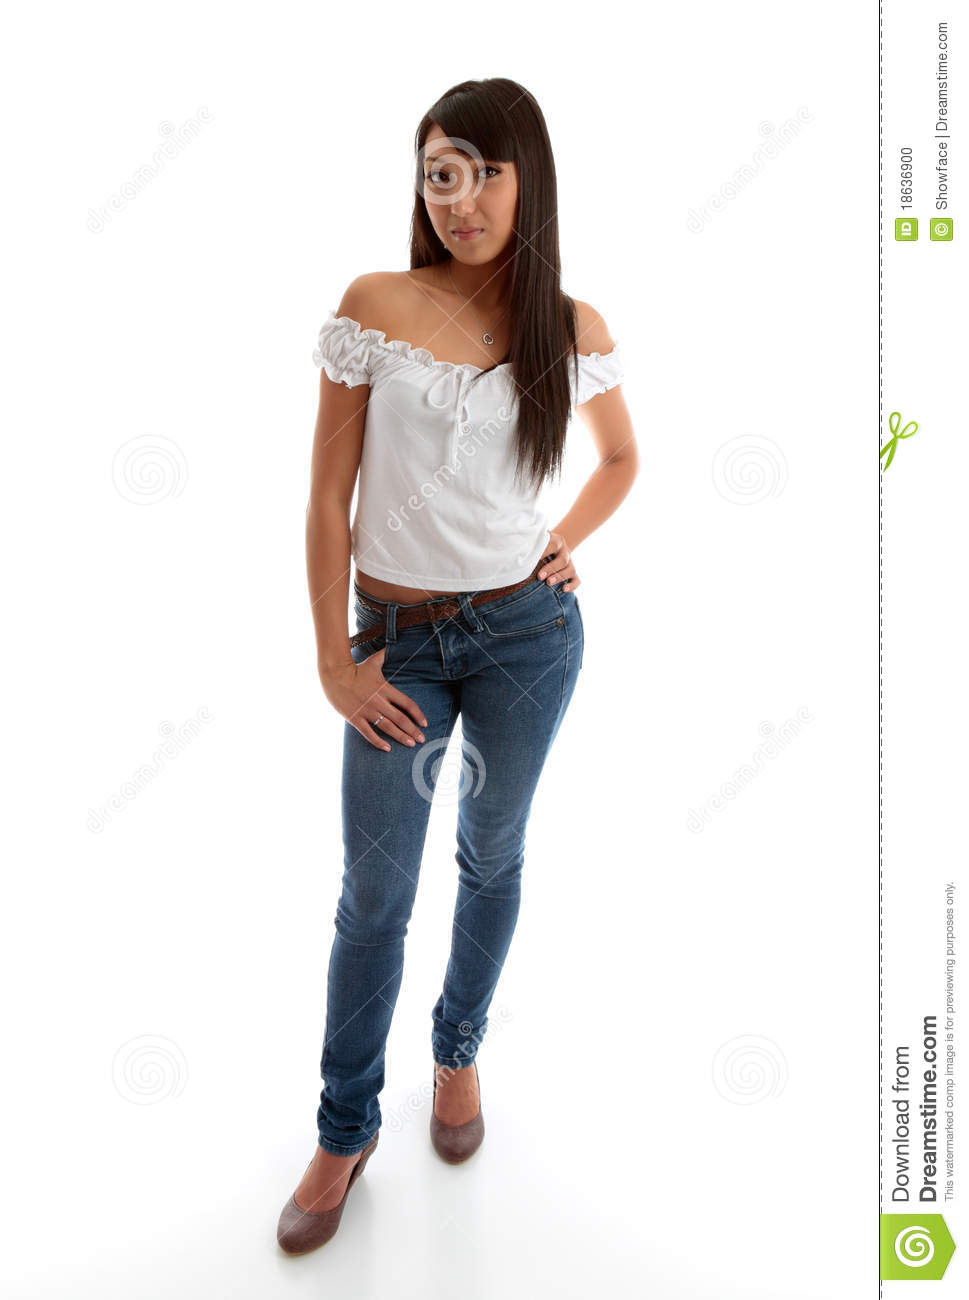 Beautiful Girl Wearing Skinny Jeans And Top Stock Photo - Image 18636900